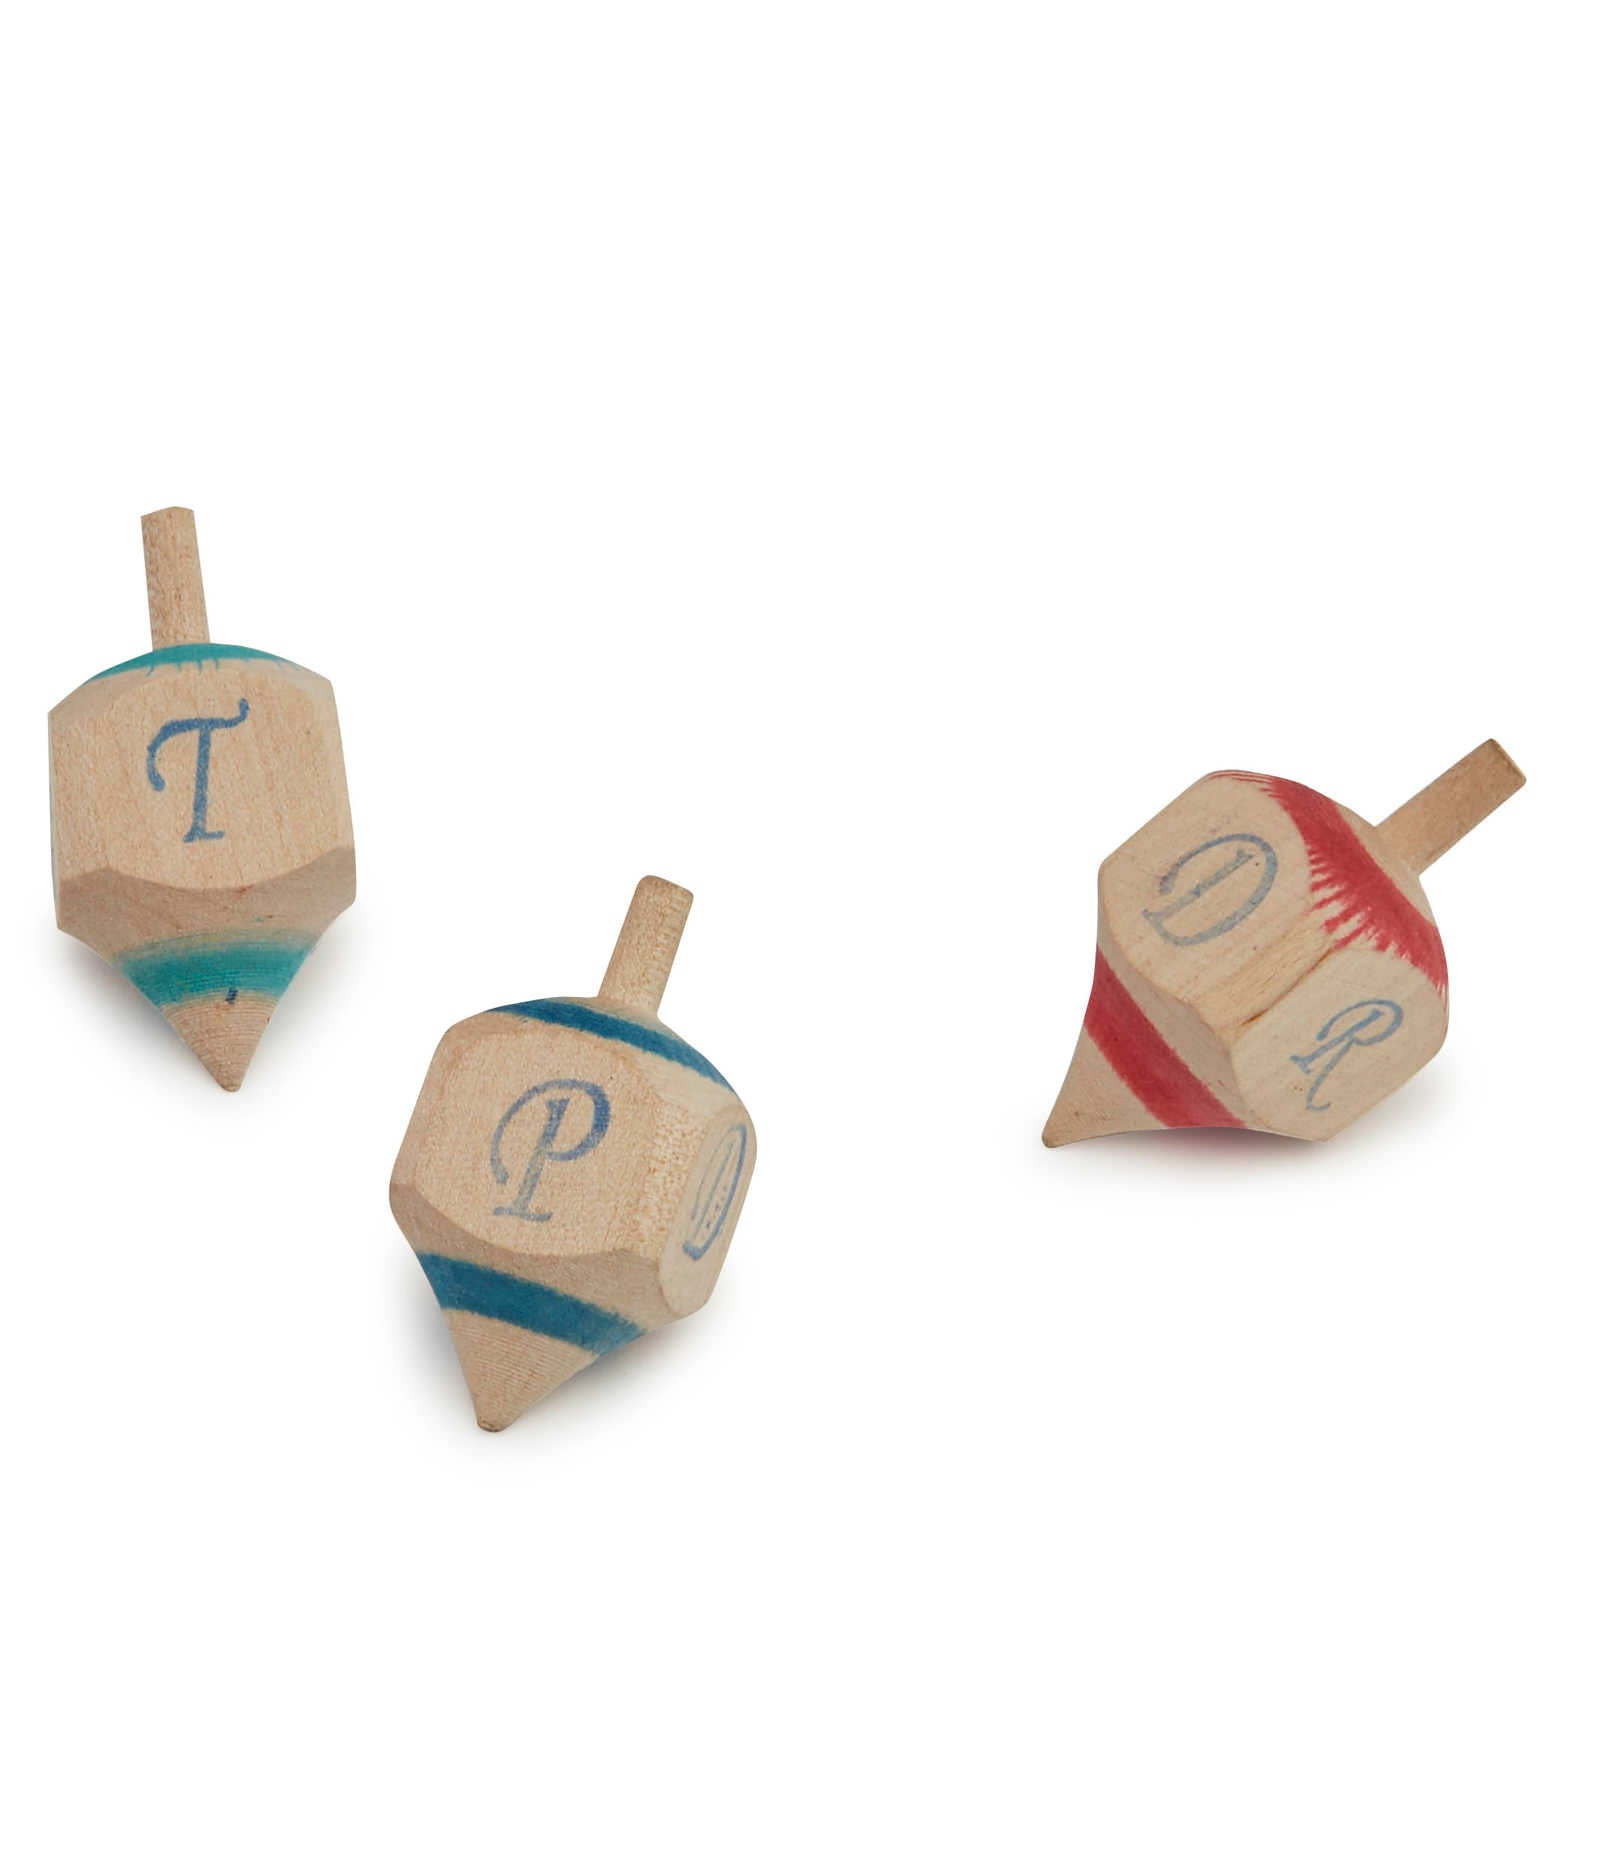 Wooden Rapa Dice In Blue, Green And Red.